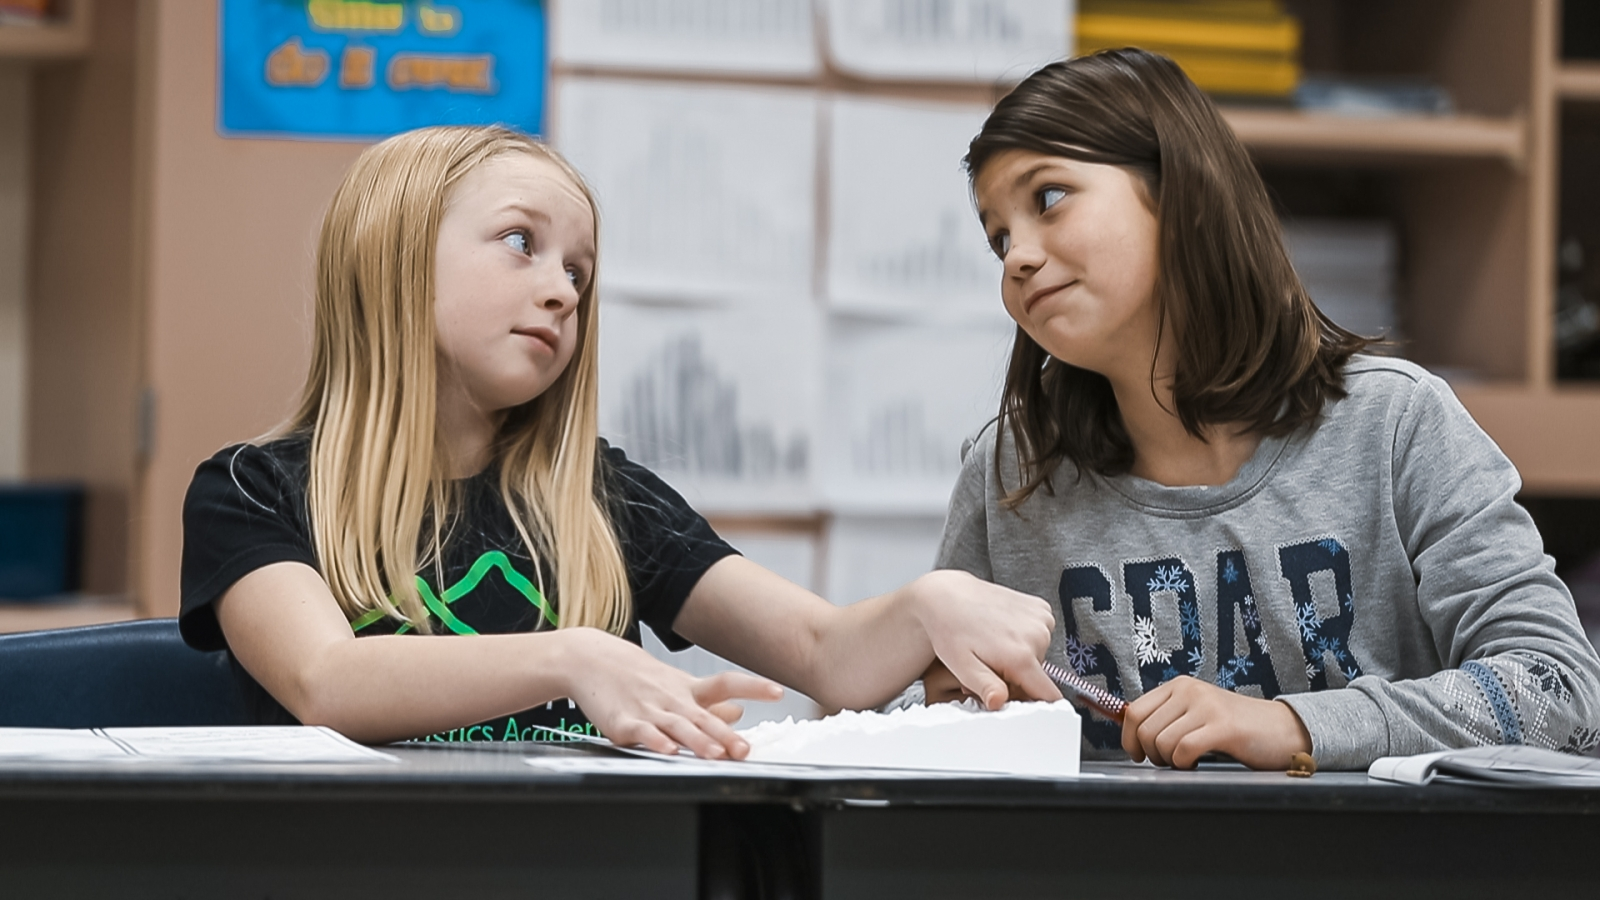 Two female students look inquistivly at each other over a science activity.